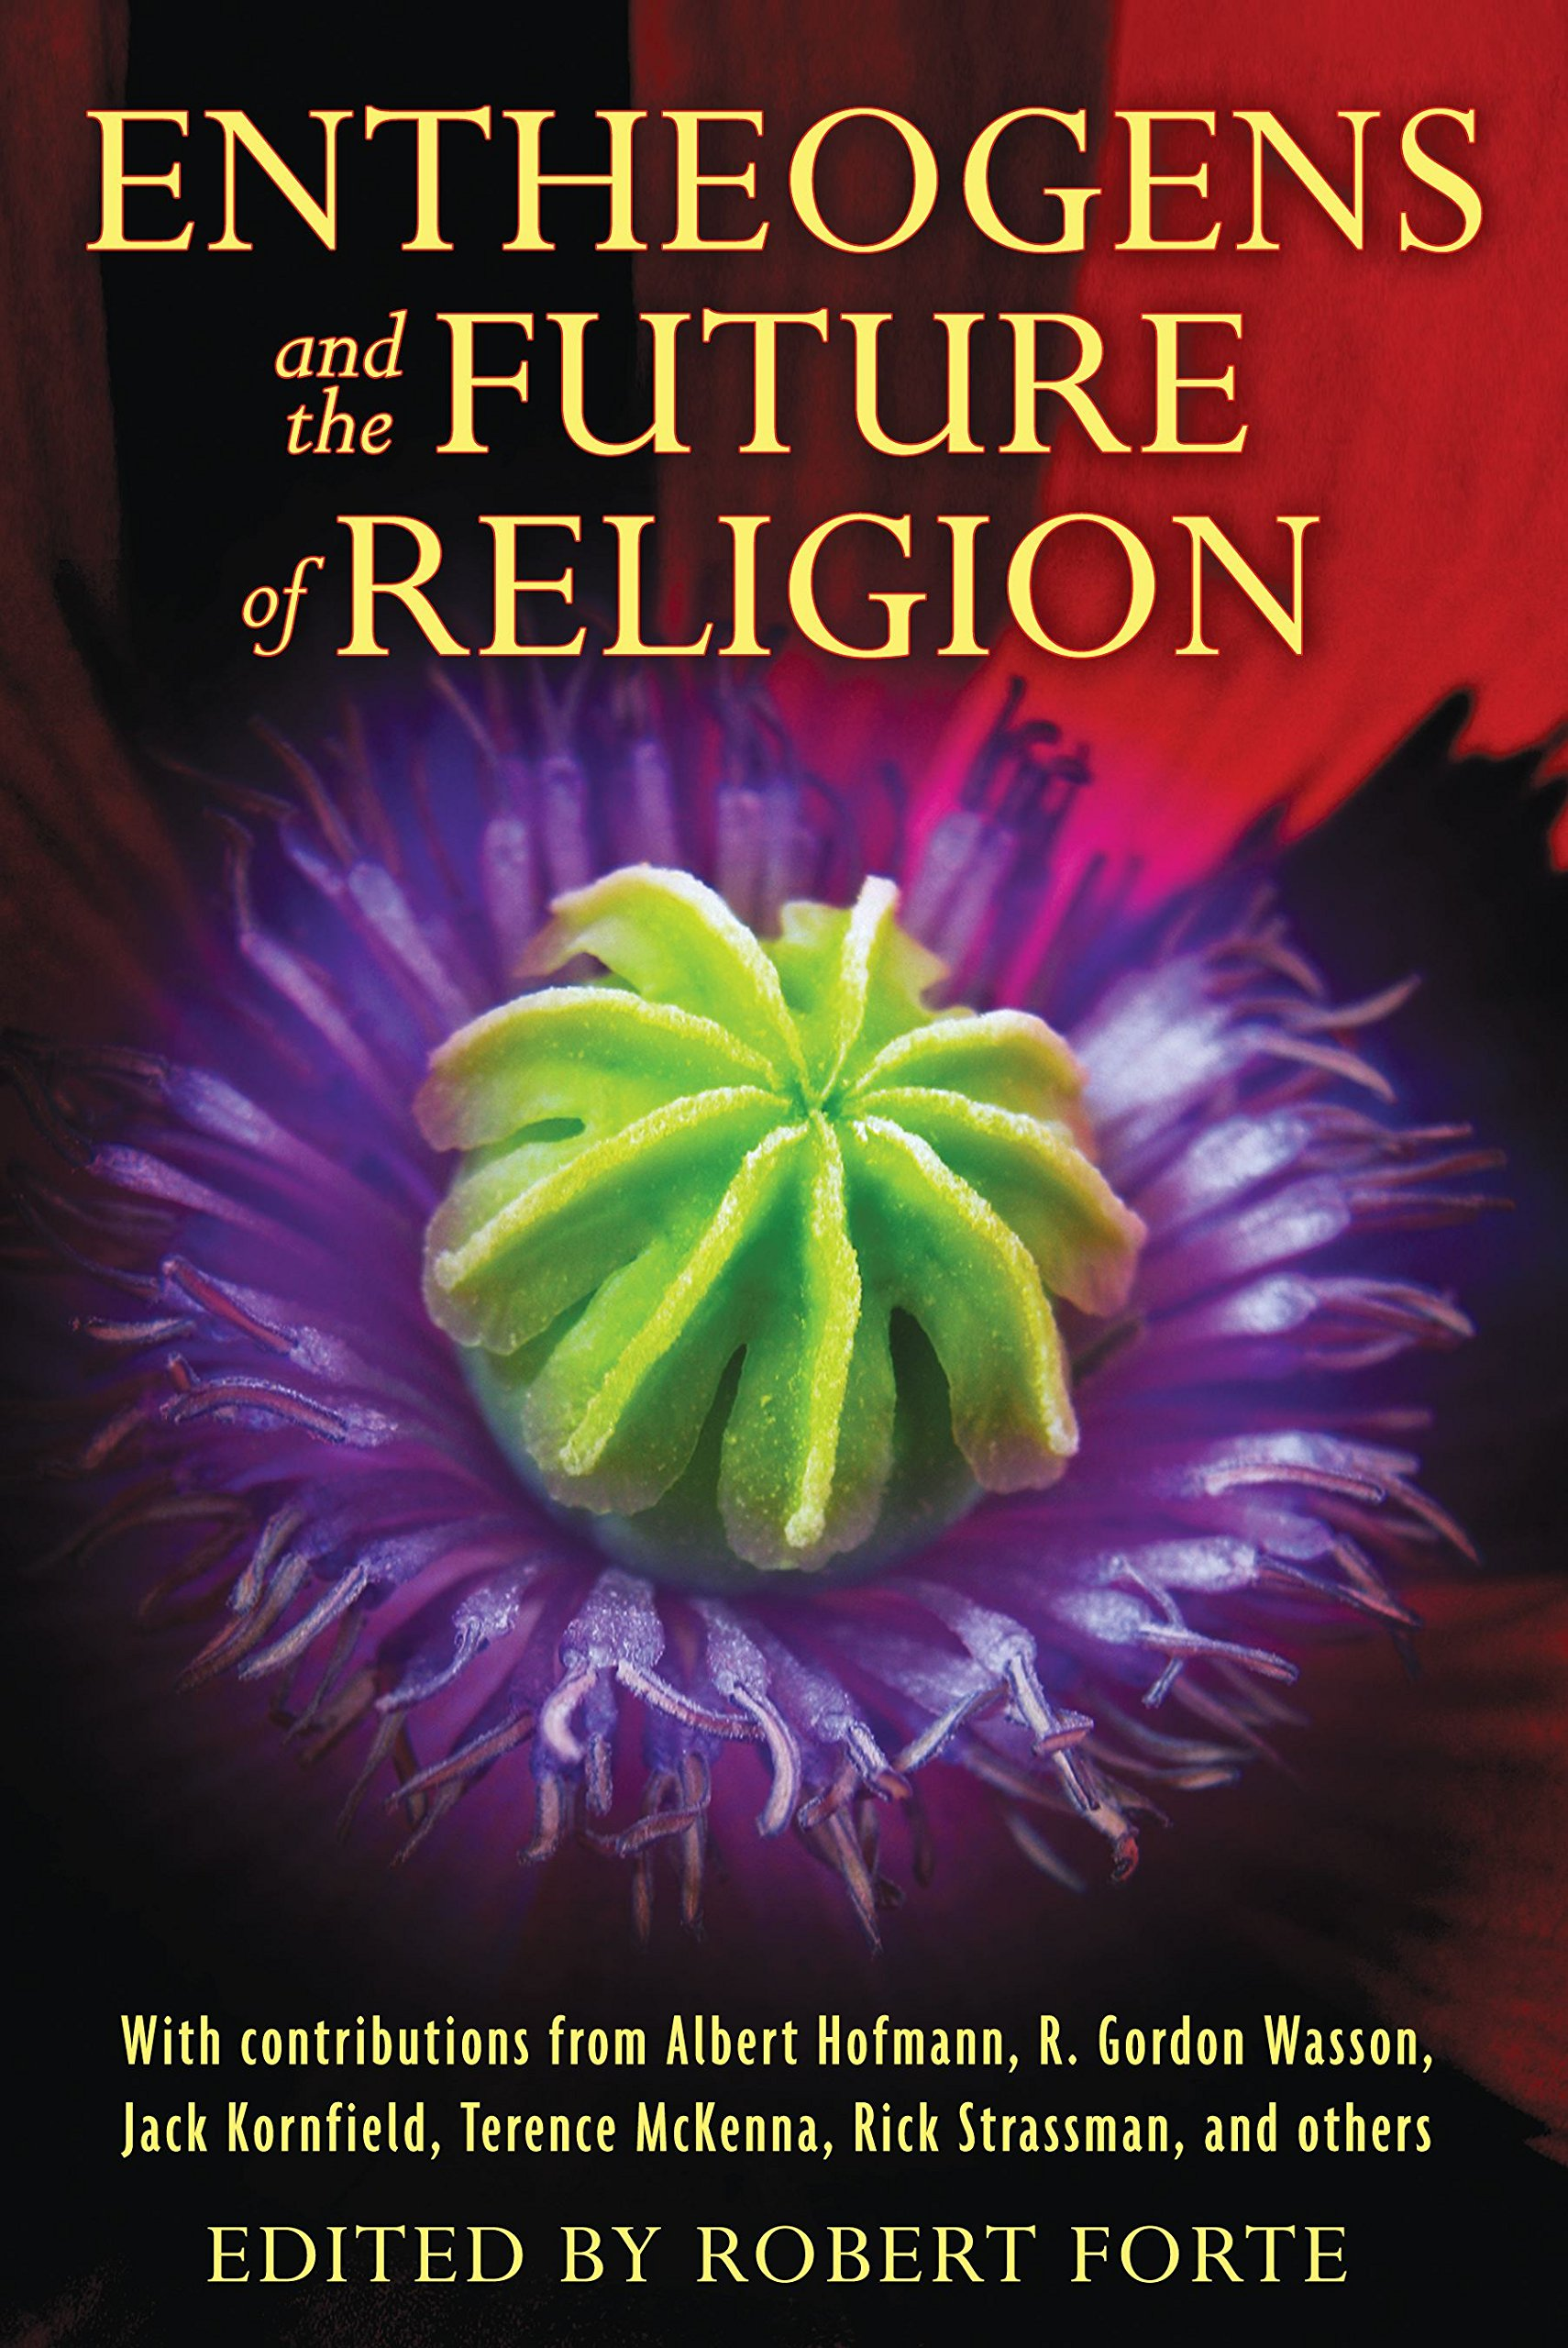 Entheogens and the Future of Religion: Amazon co uk: Robert Forte